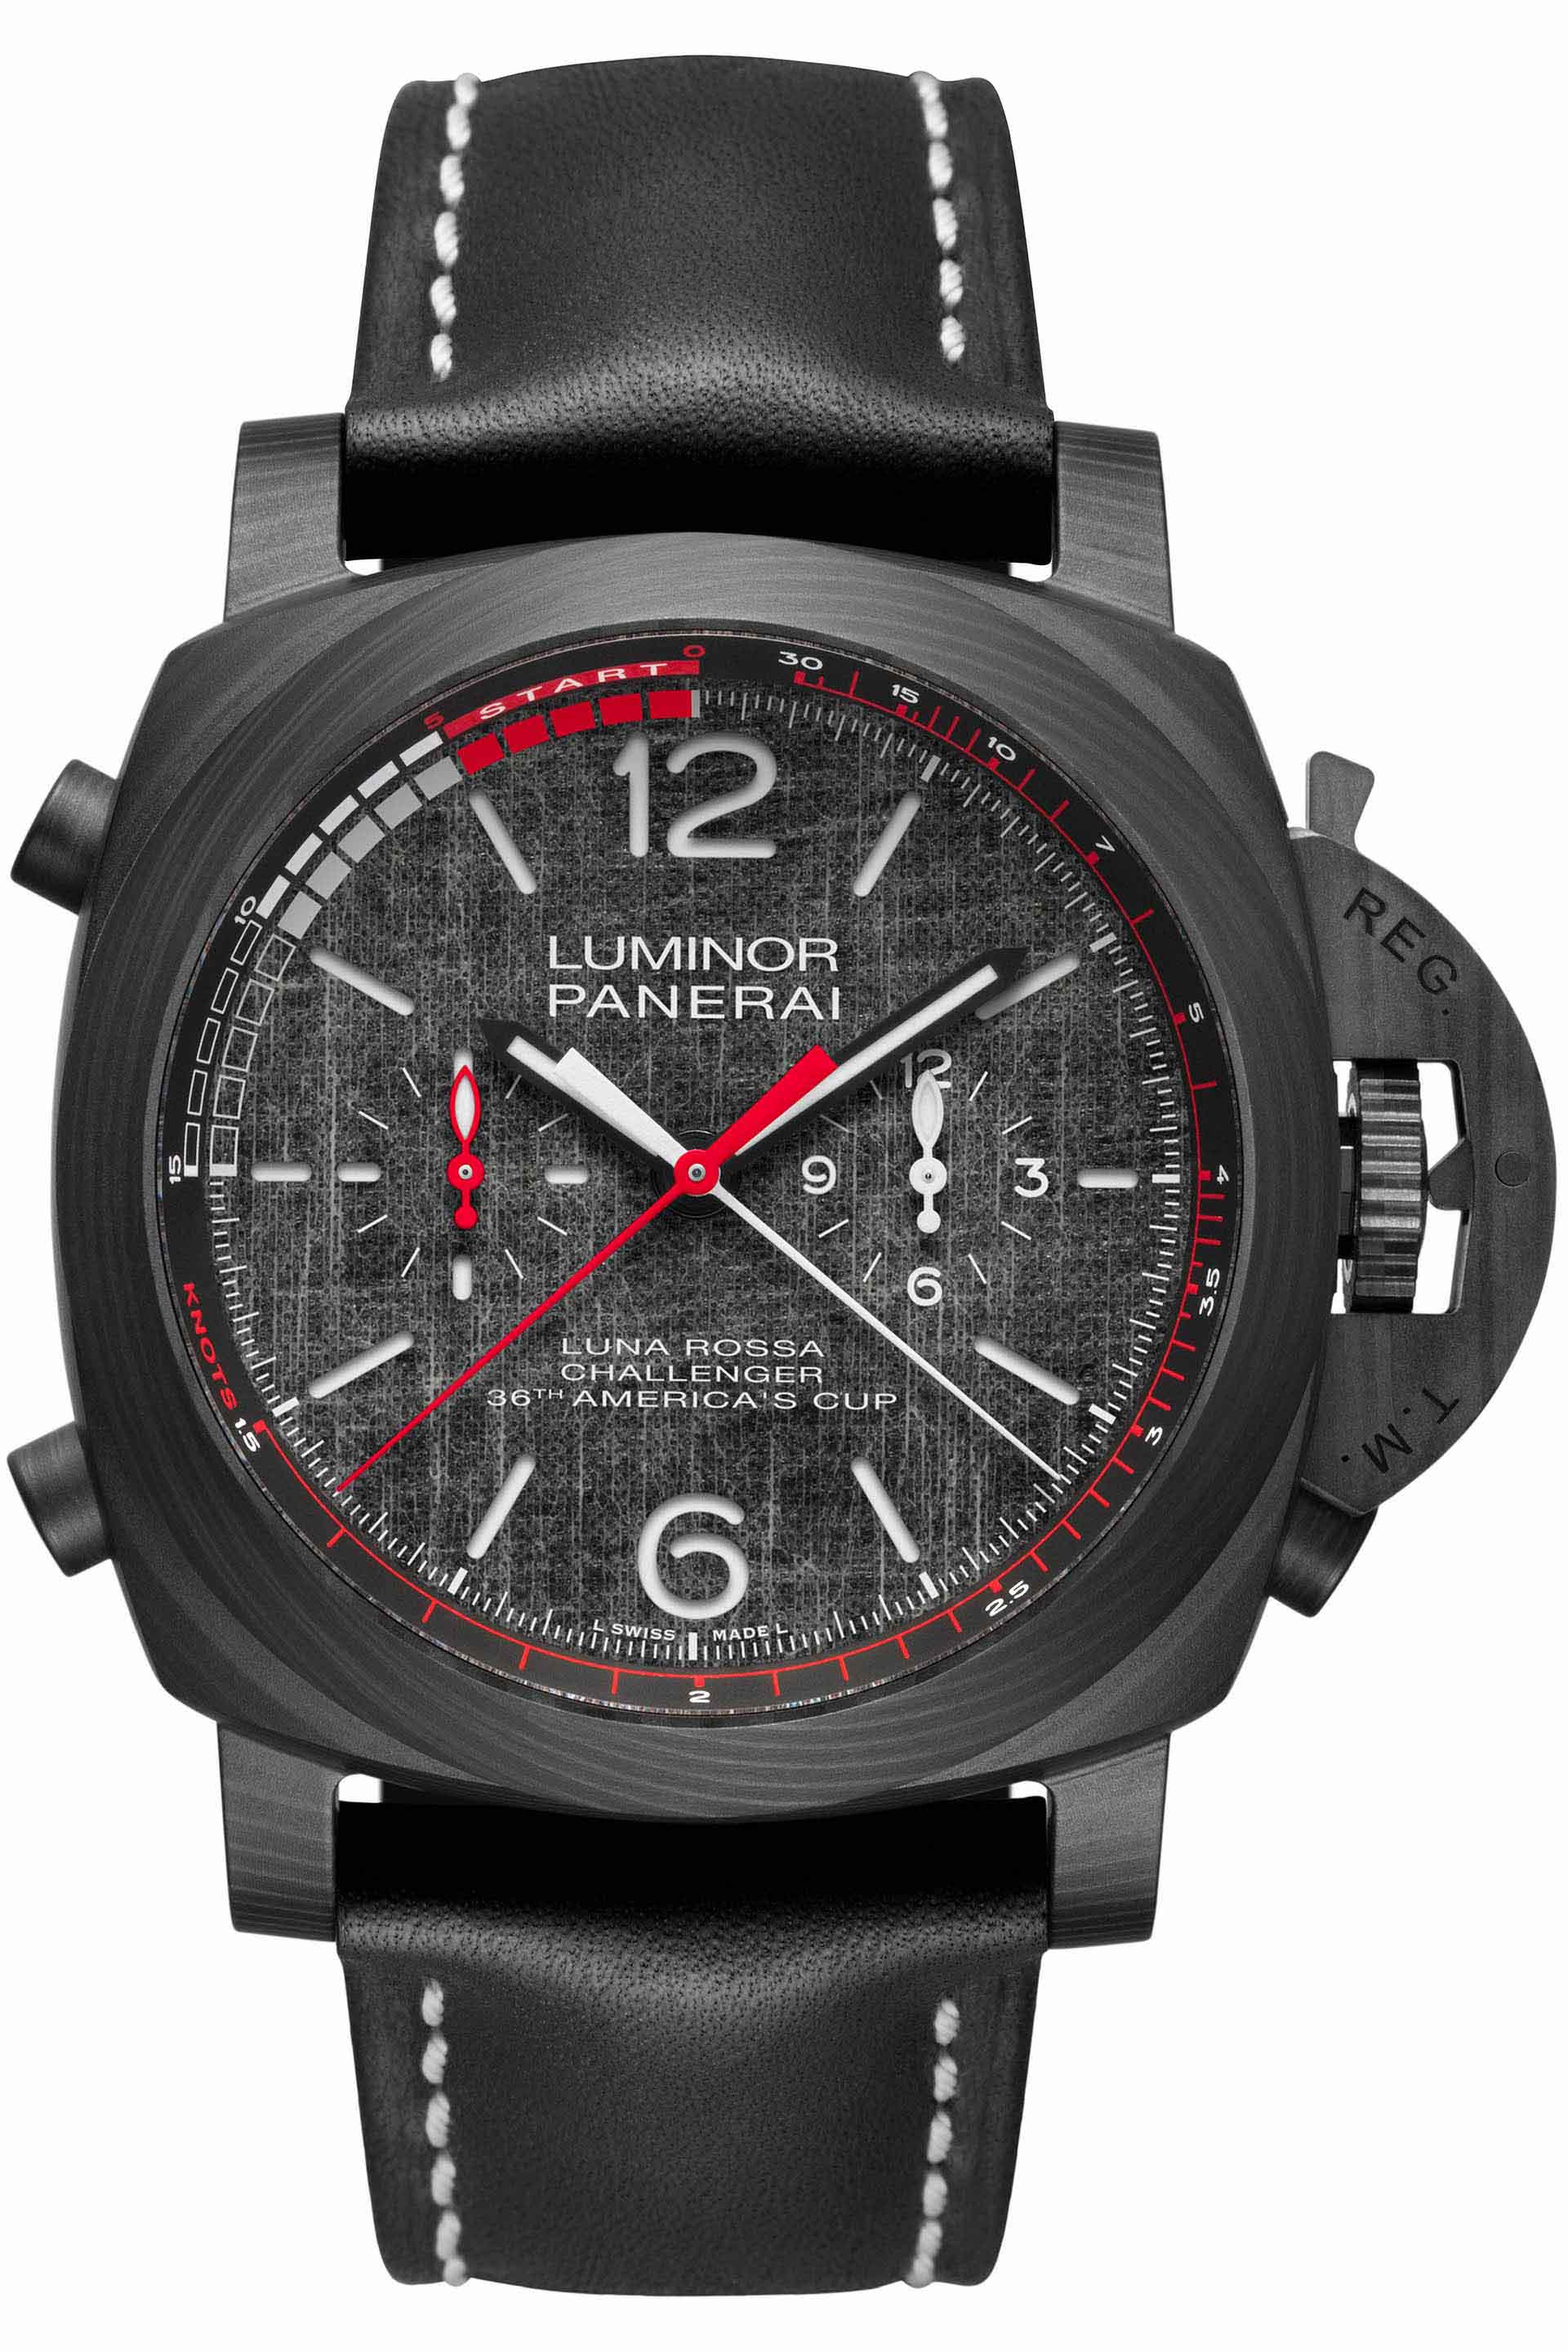 Panerai Luminor Luna Rossa Regatta